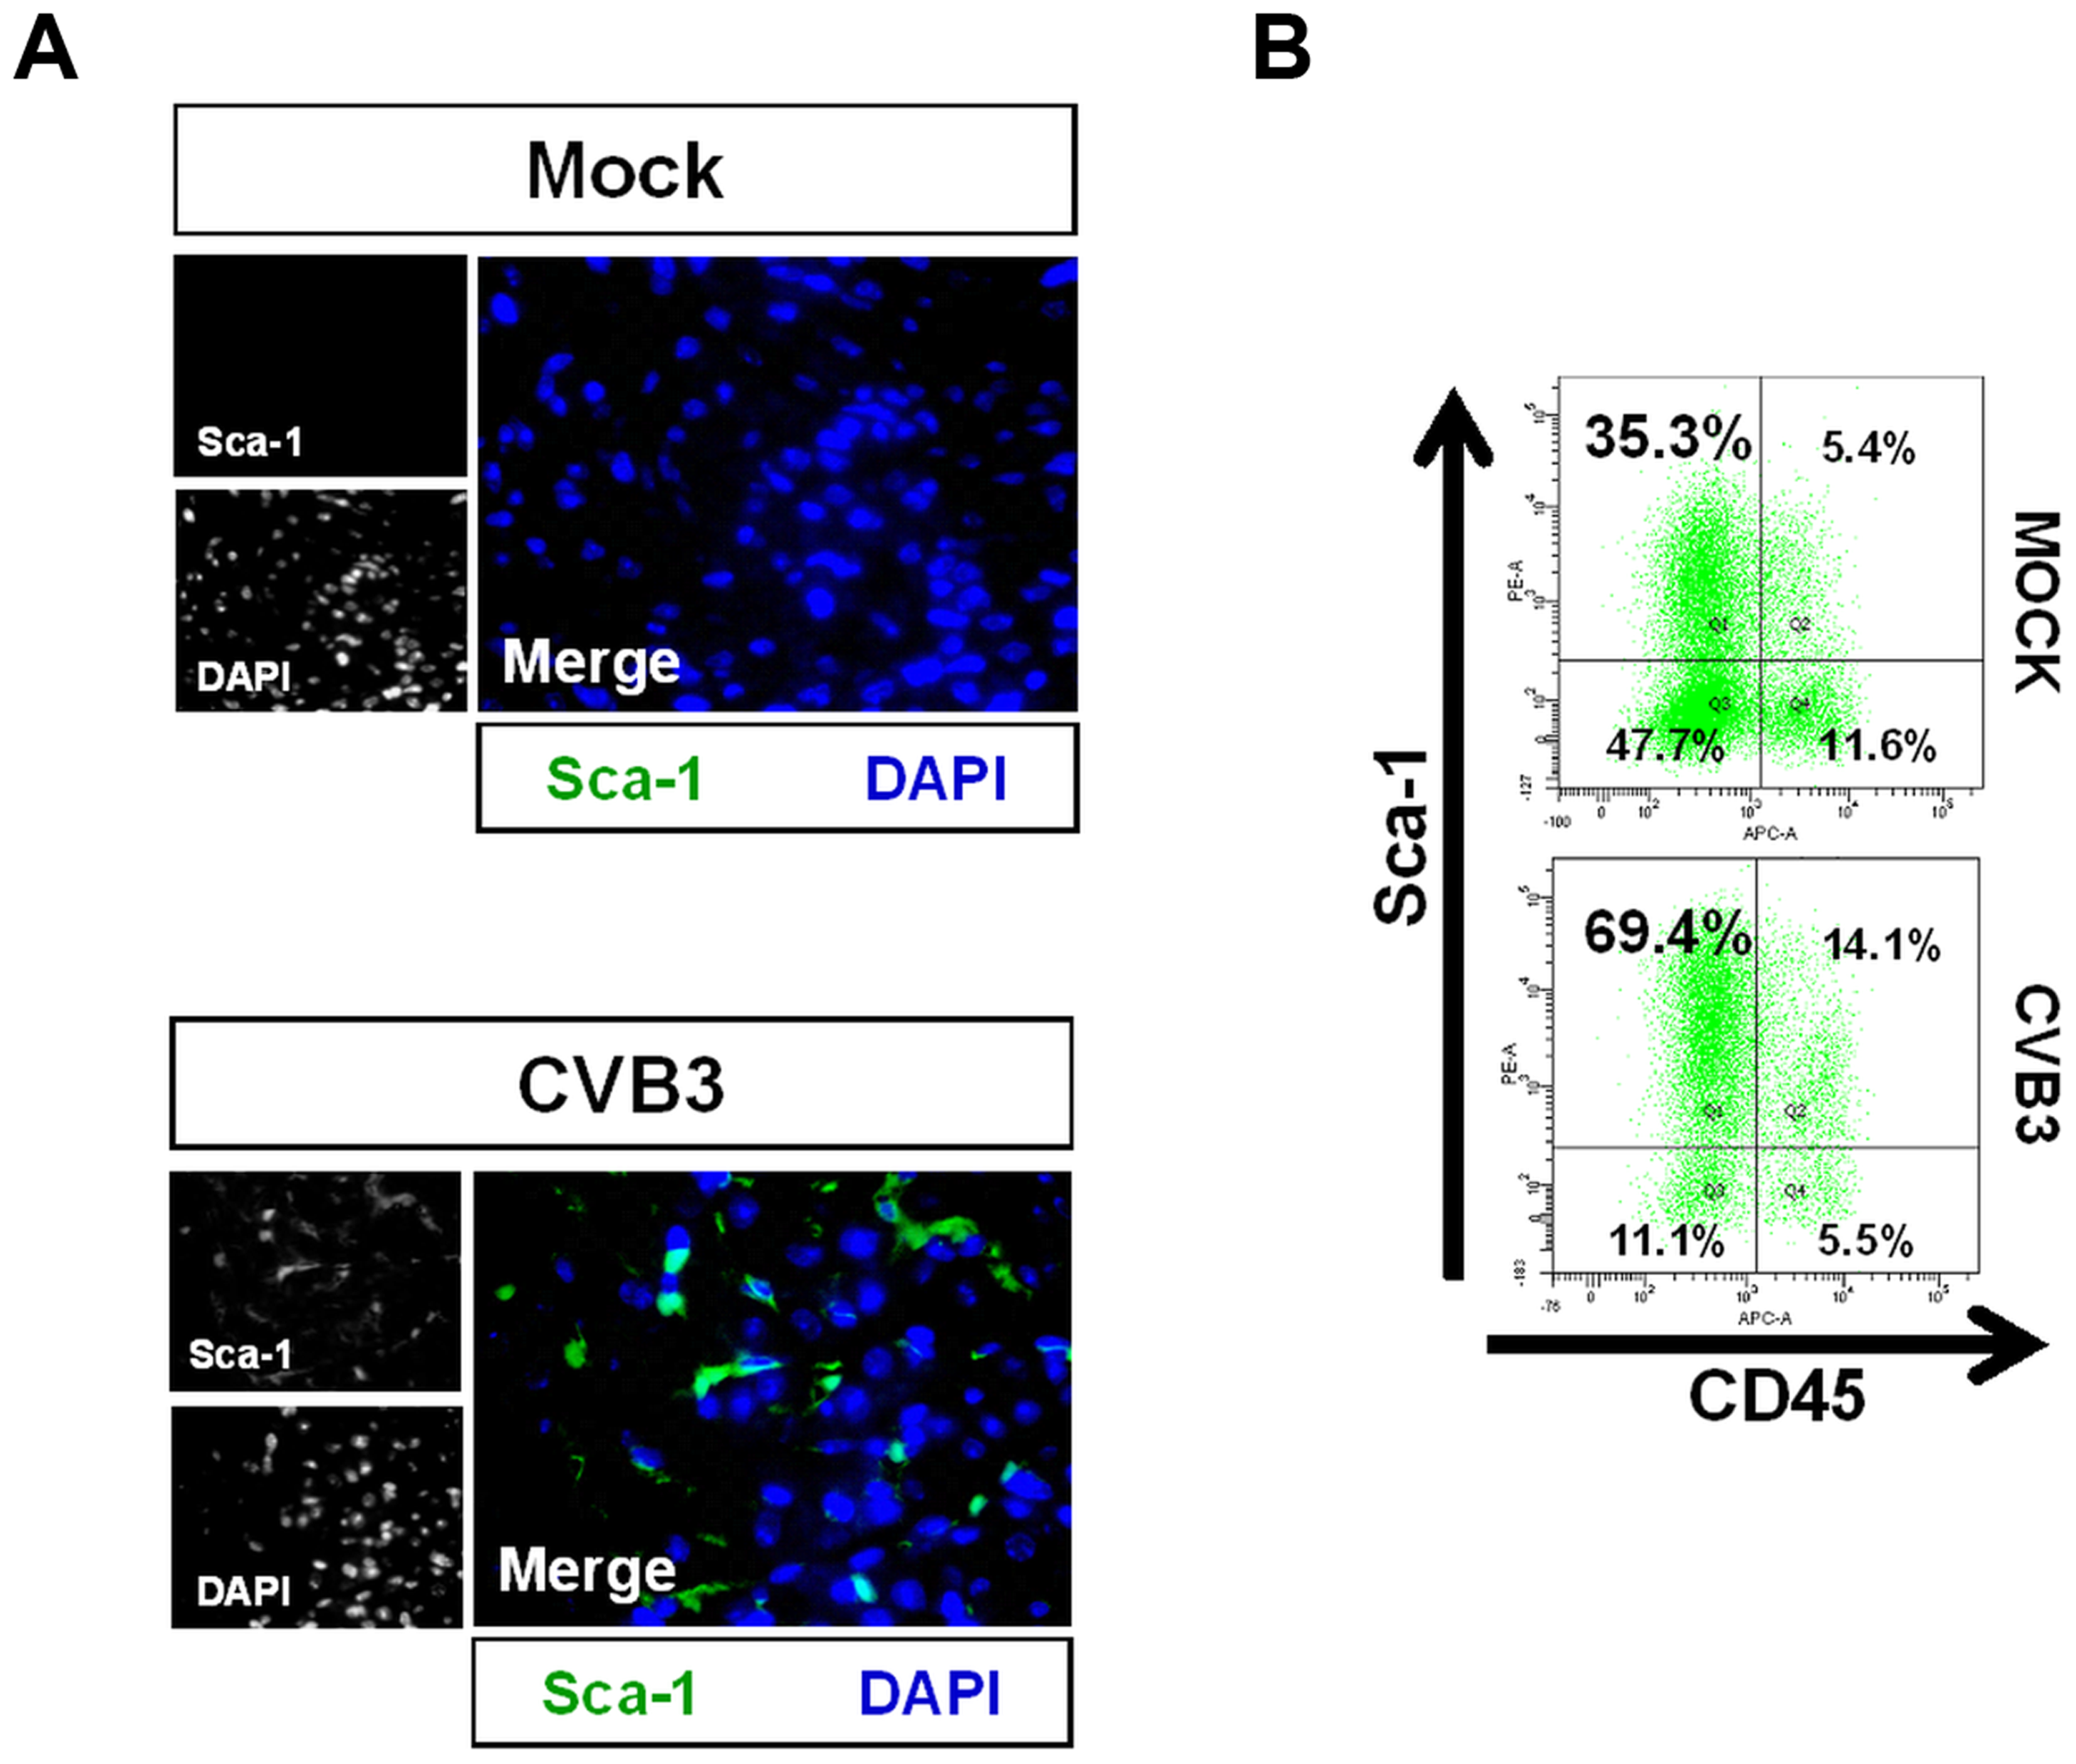 Acute CVB3 infection in juvenile mice induced an increase in myocardial Sca-1 expression.